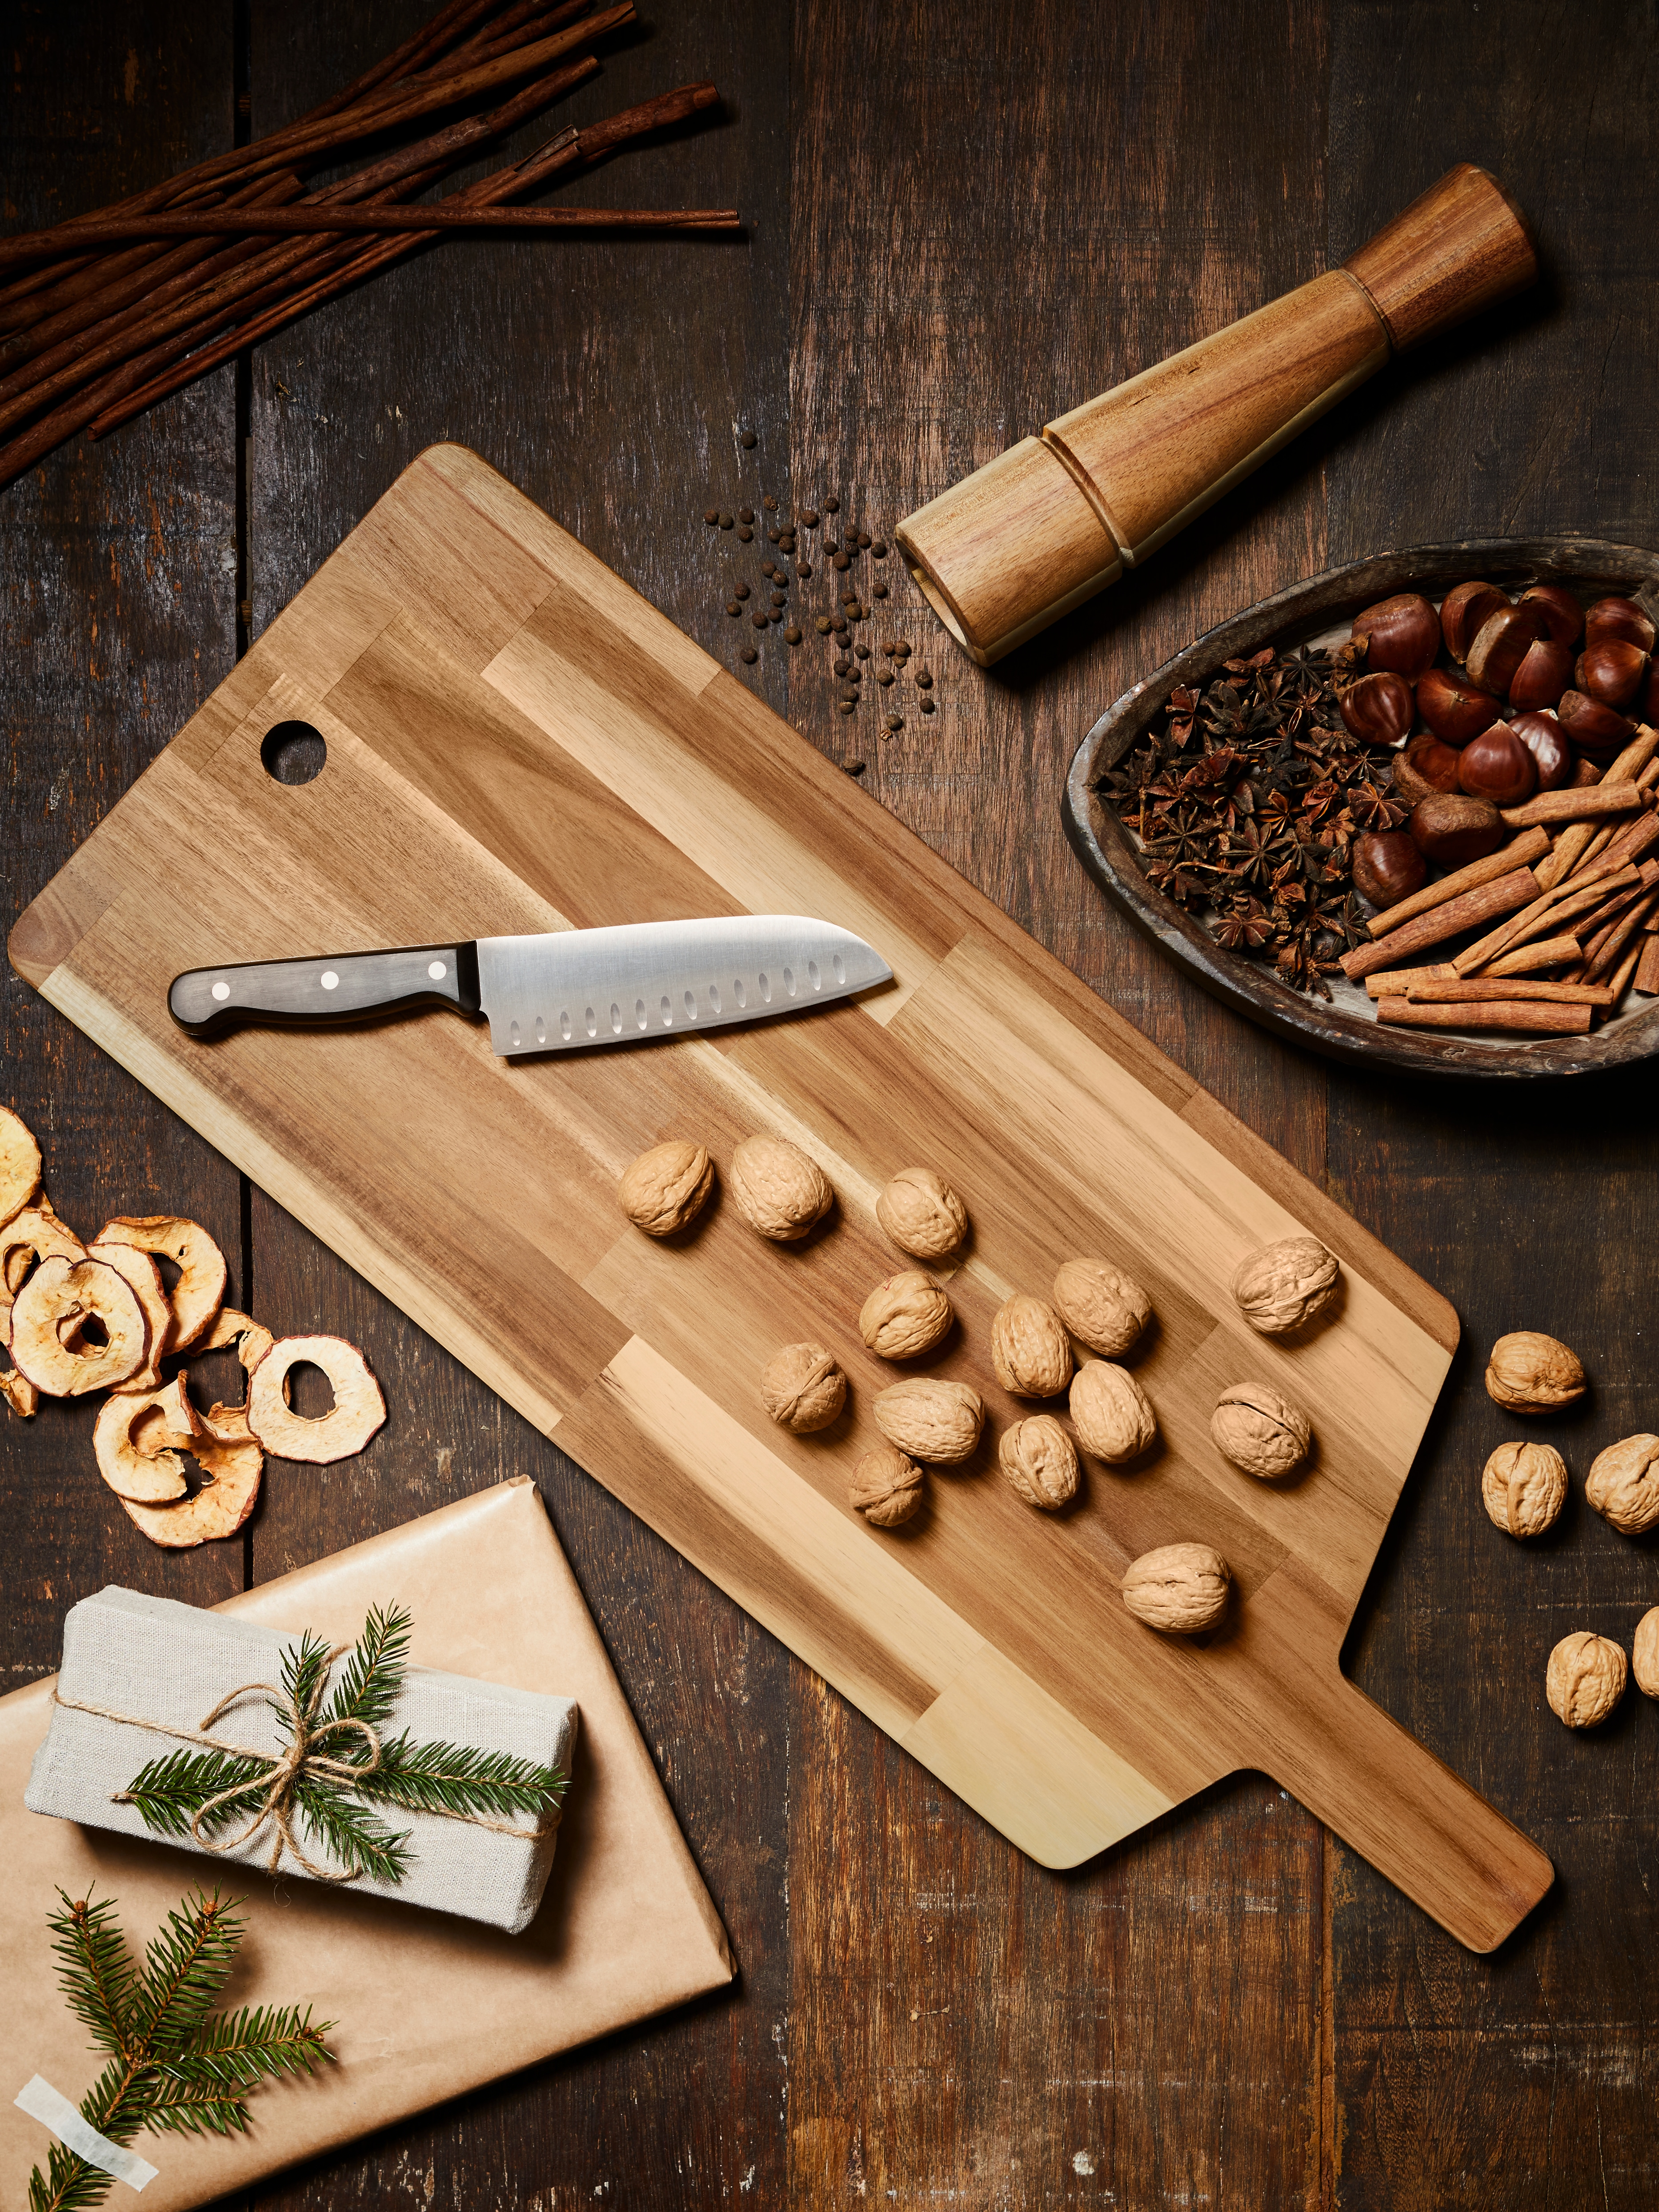 SMÅÄTA wooden chopping board with nuts, spices and dried fruit scattered on wooden surface, kitchen knife and spice mill.